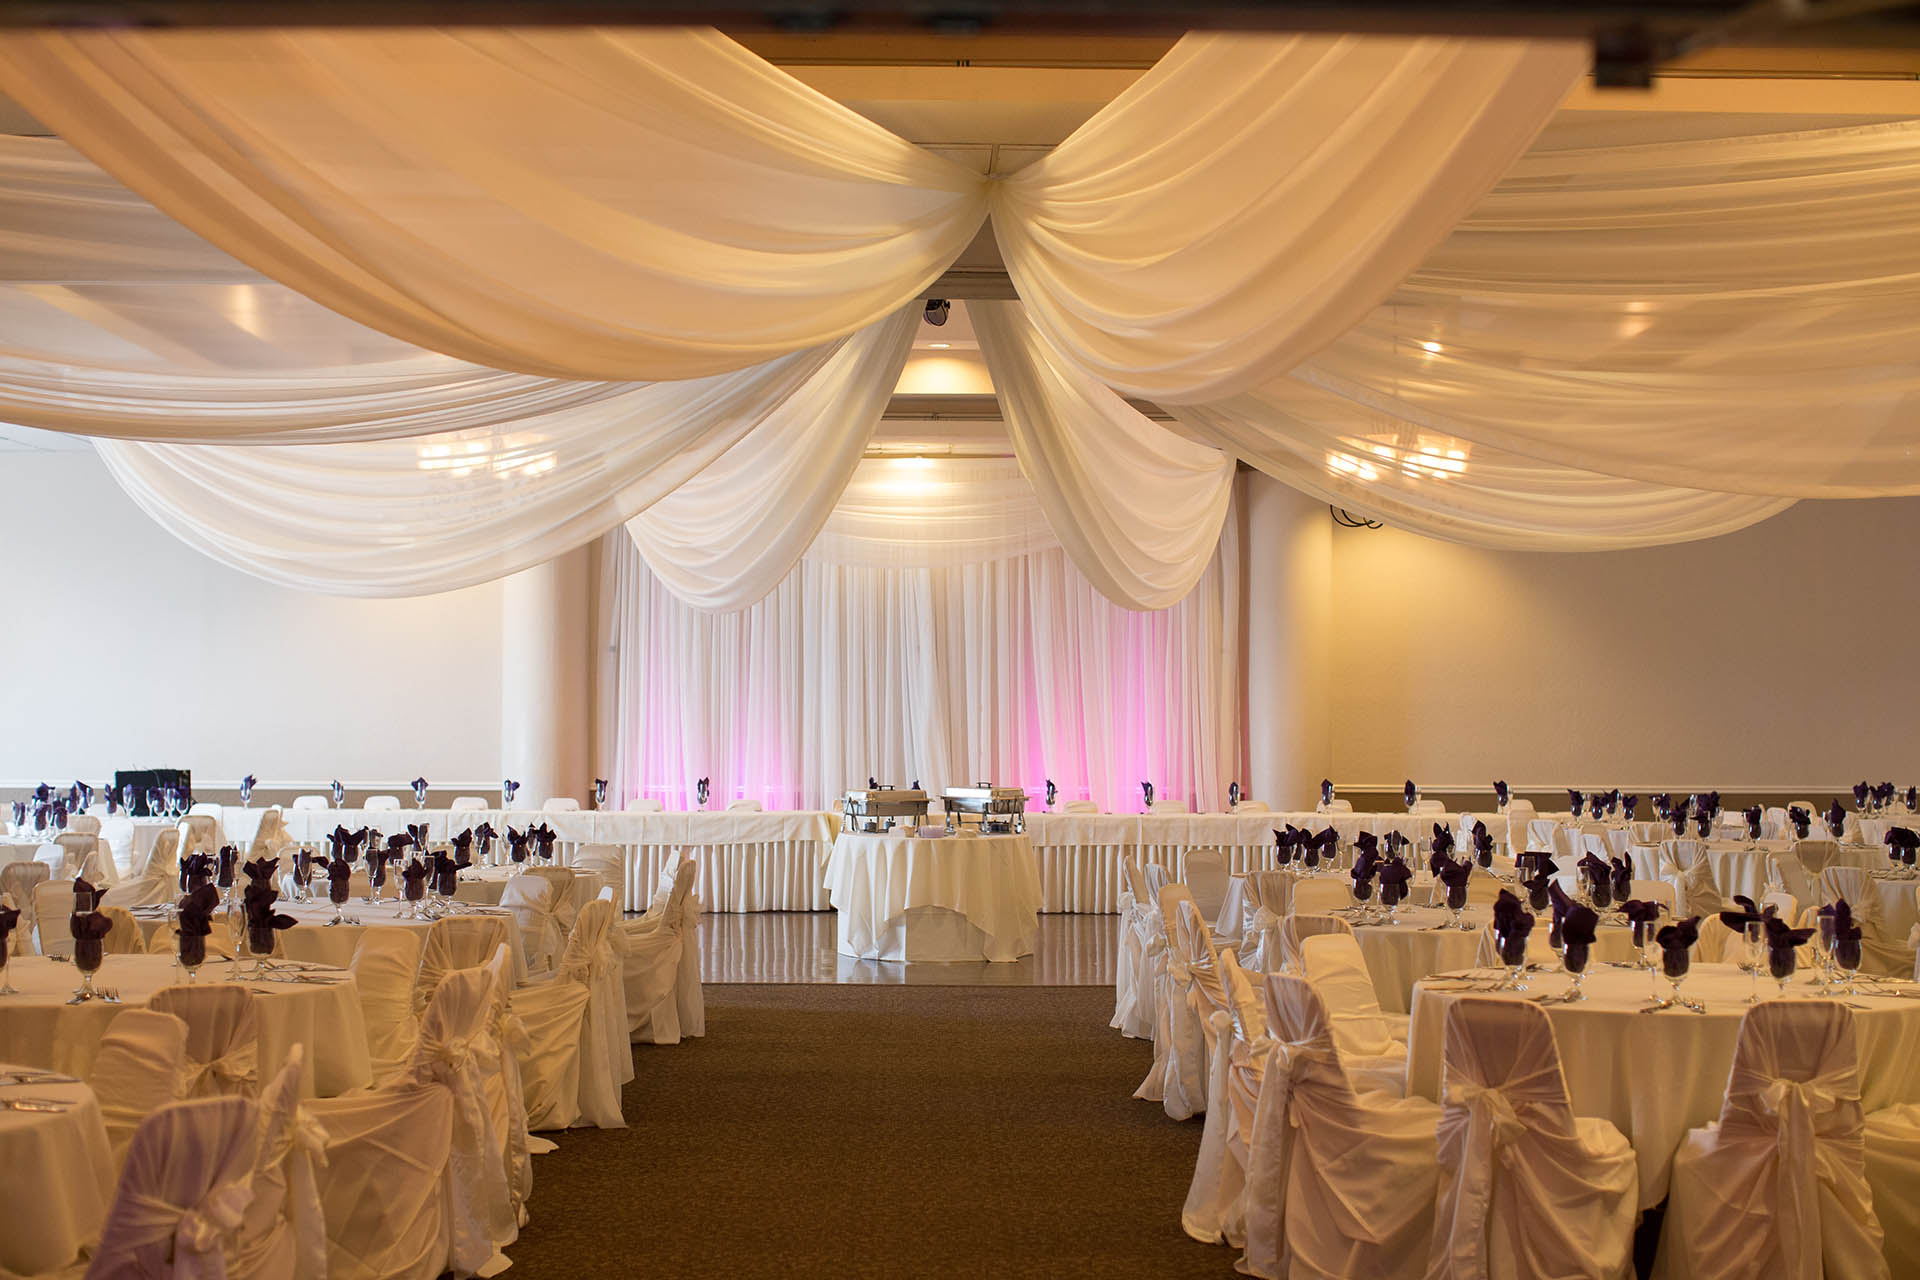 Classic banquet room for wedding receptions